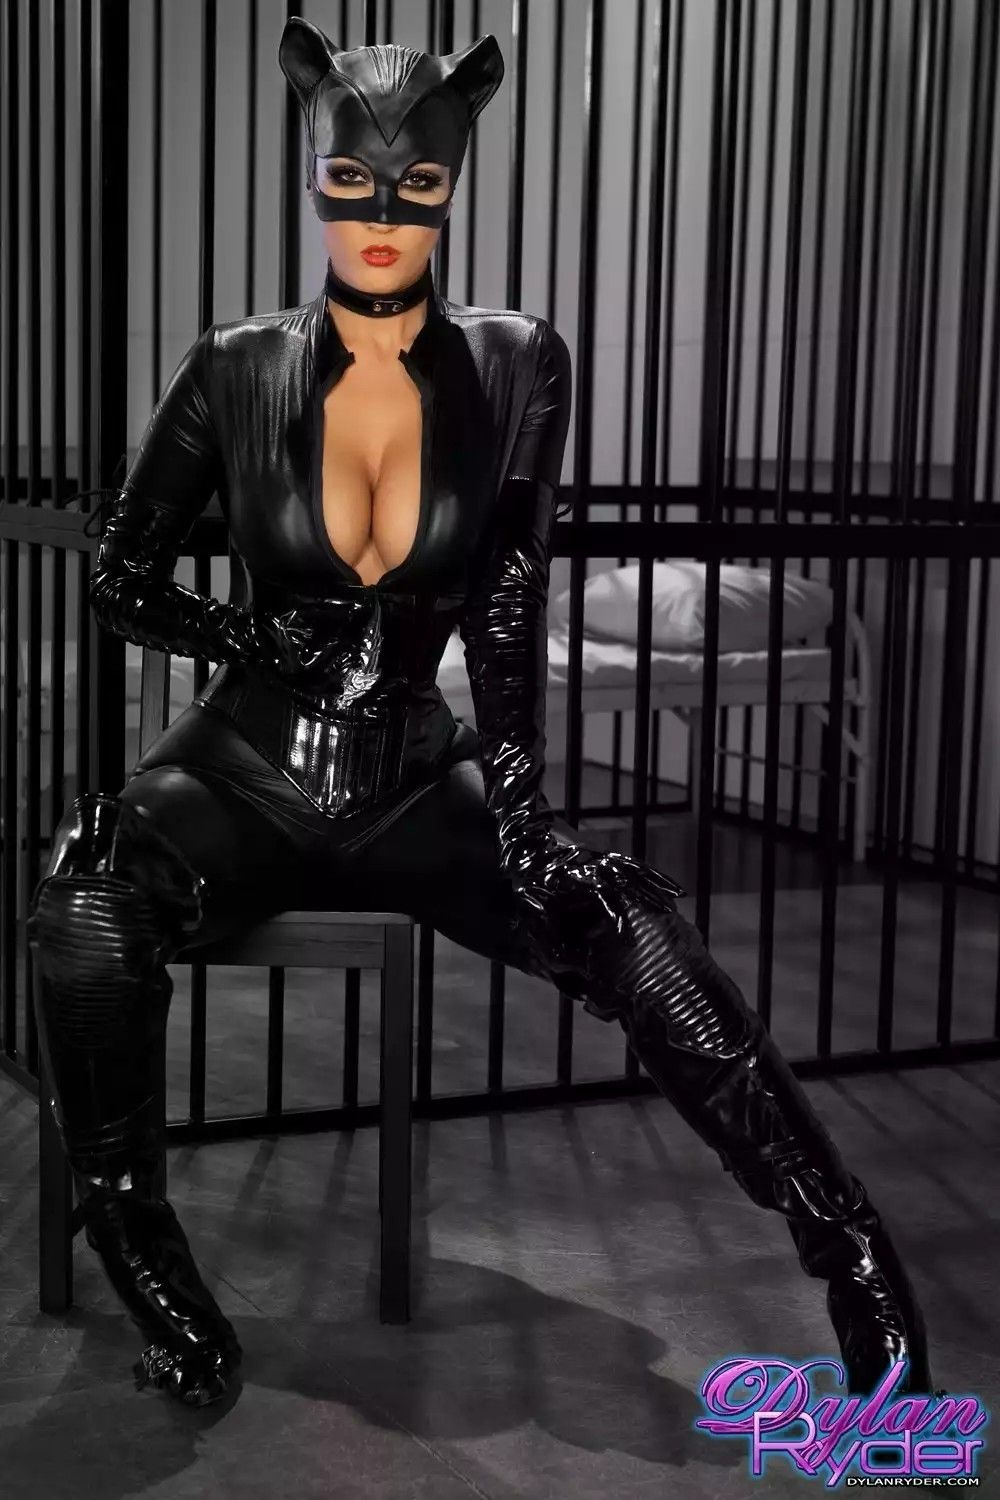 Dylan ryder catwoman